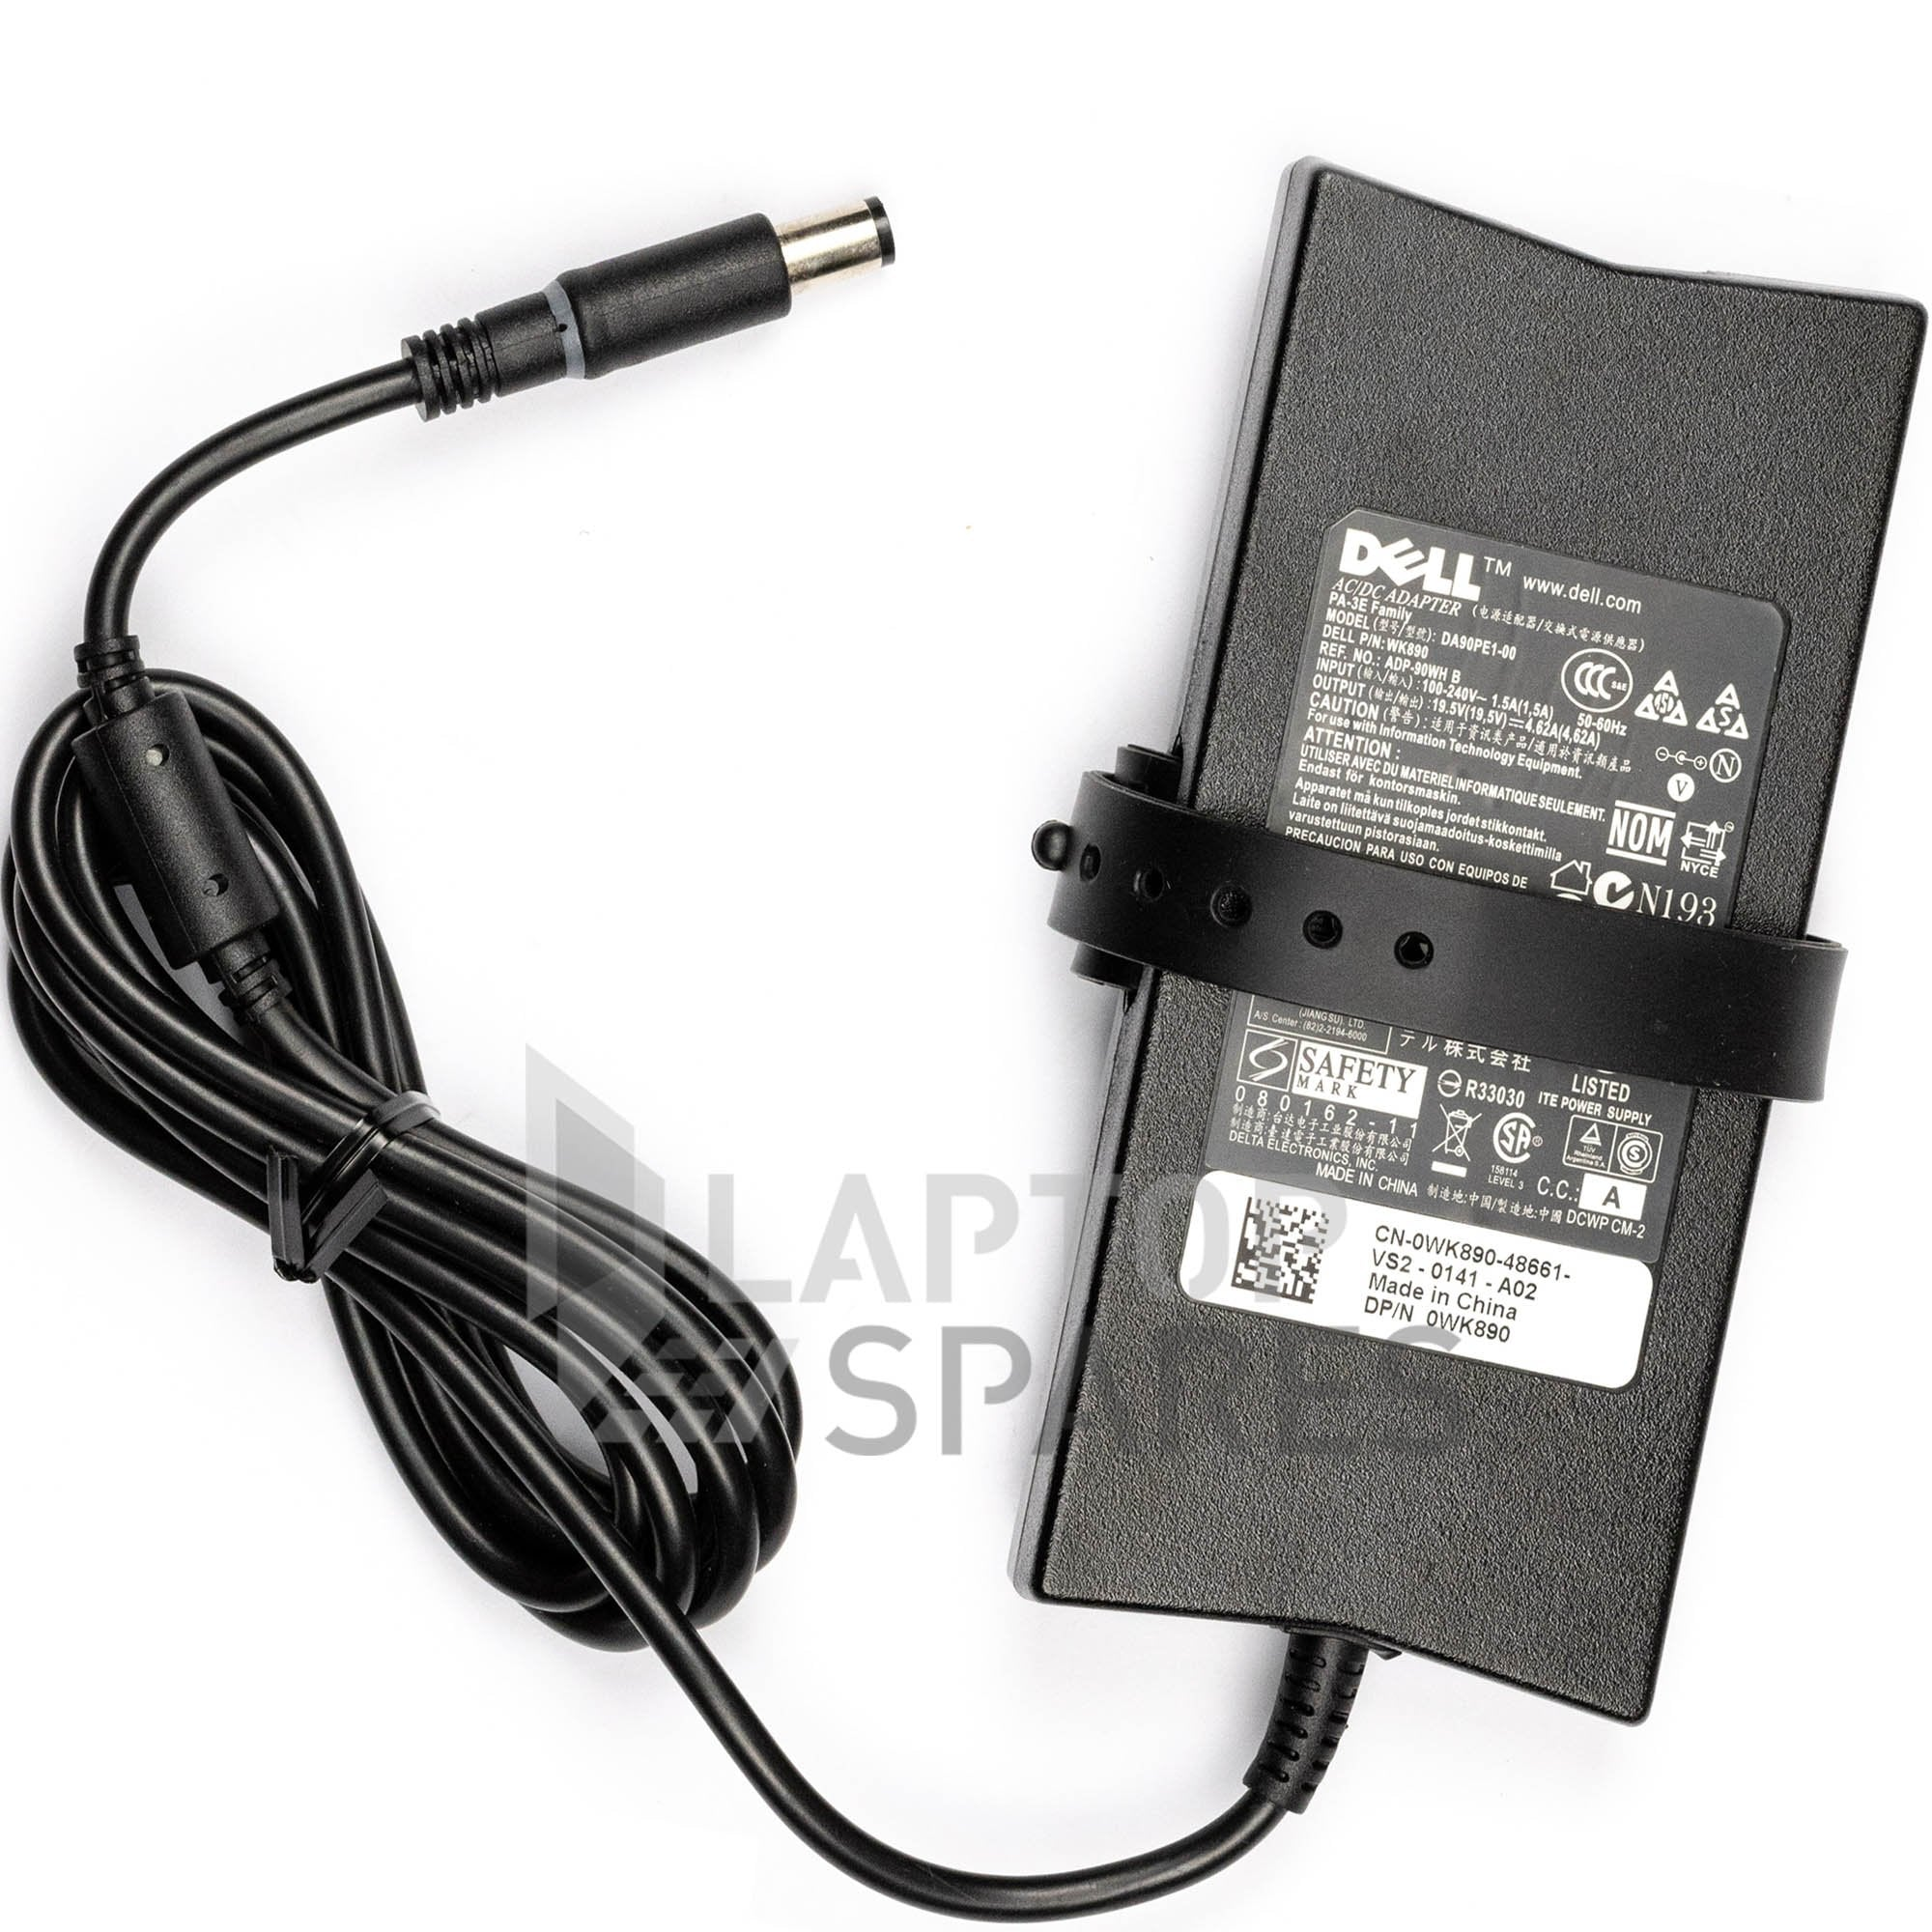 Dell Latitude E5420m E5430 E5440 Laptop Slim AC Adapter Charger